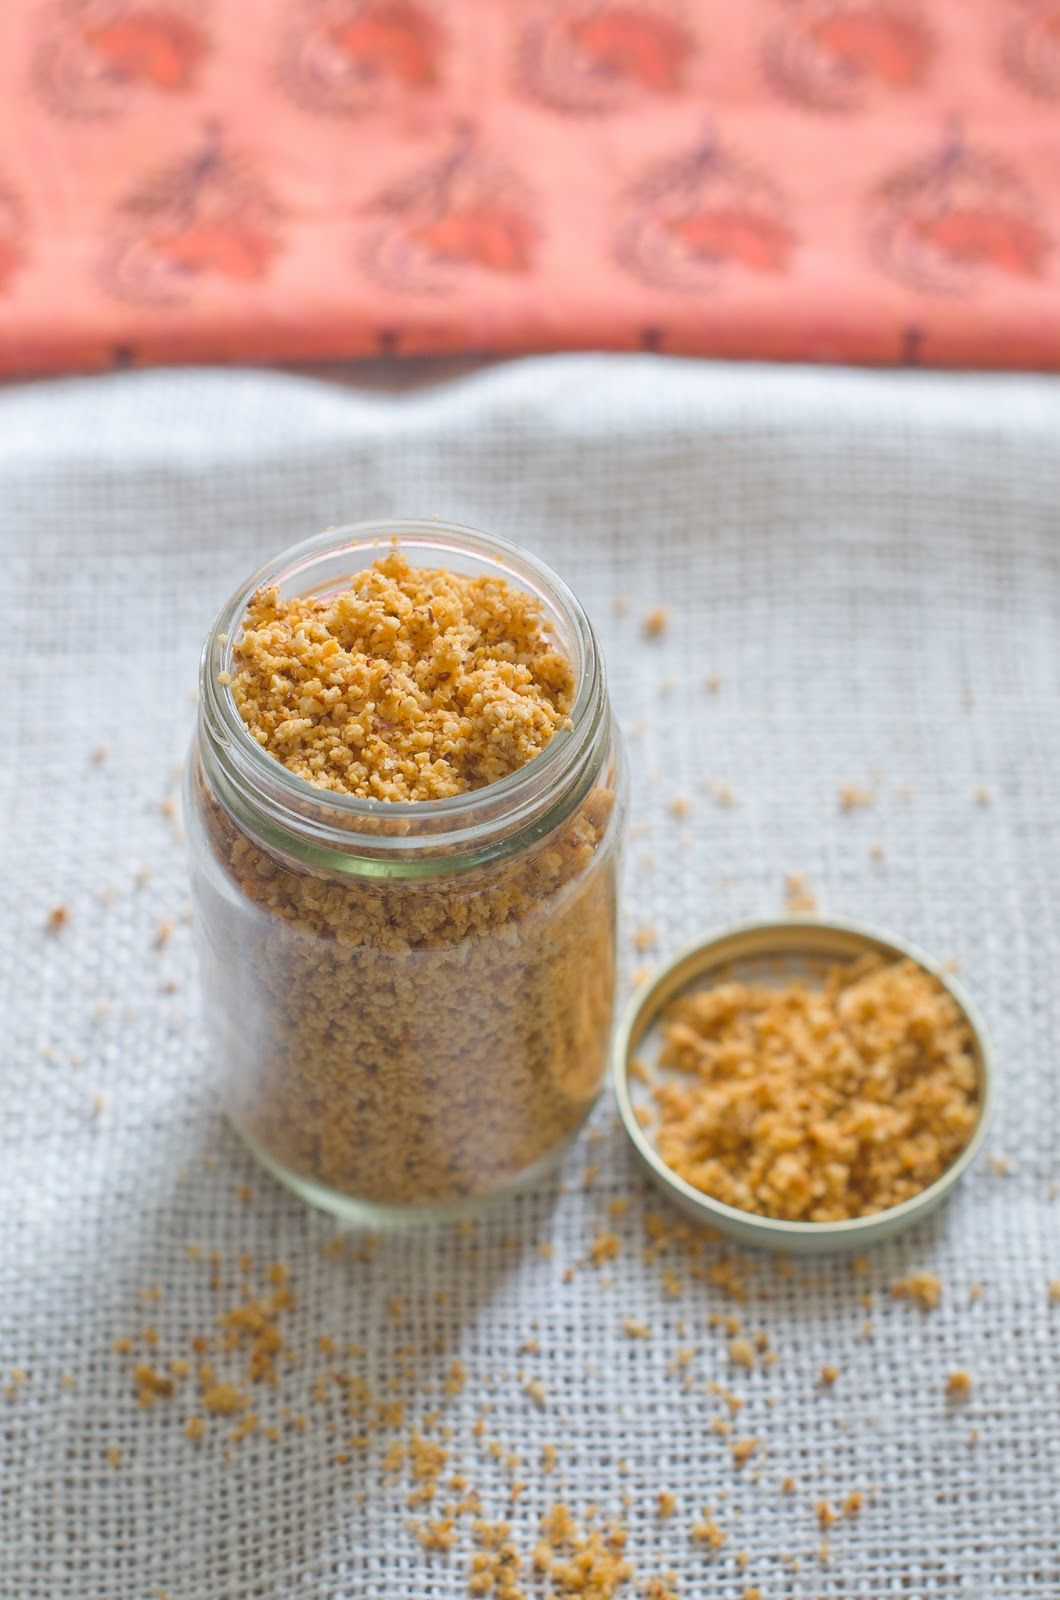 Sesame seeds are high in calcium and have fibers that can